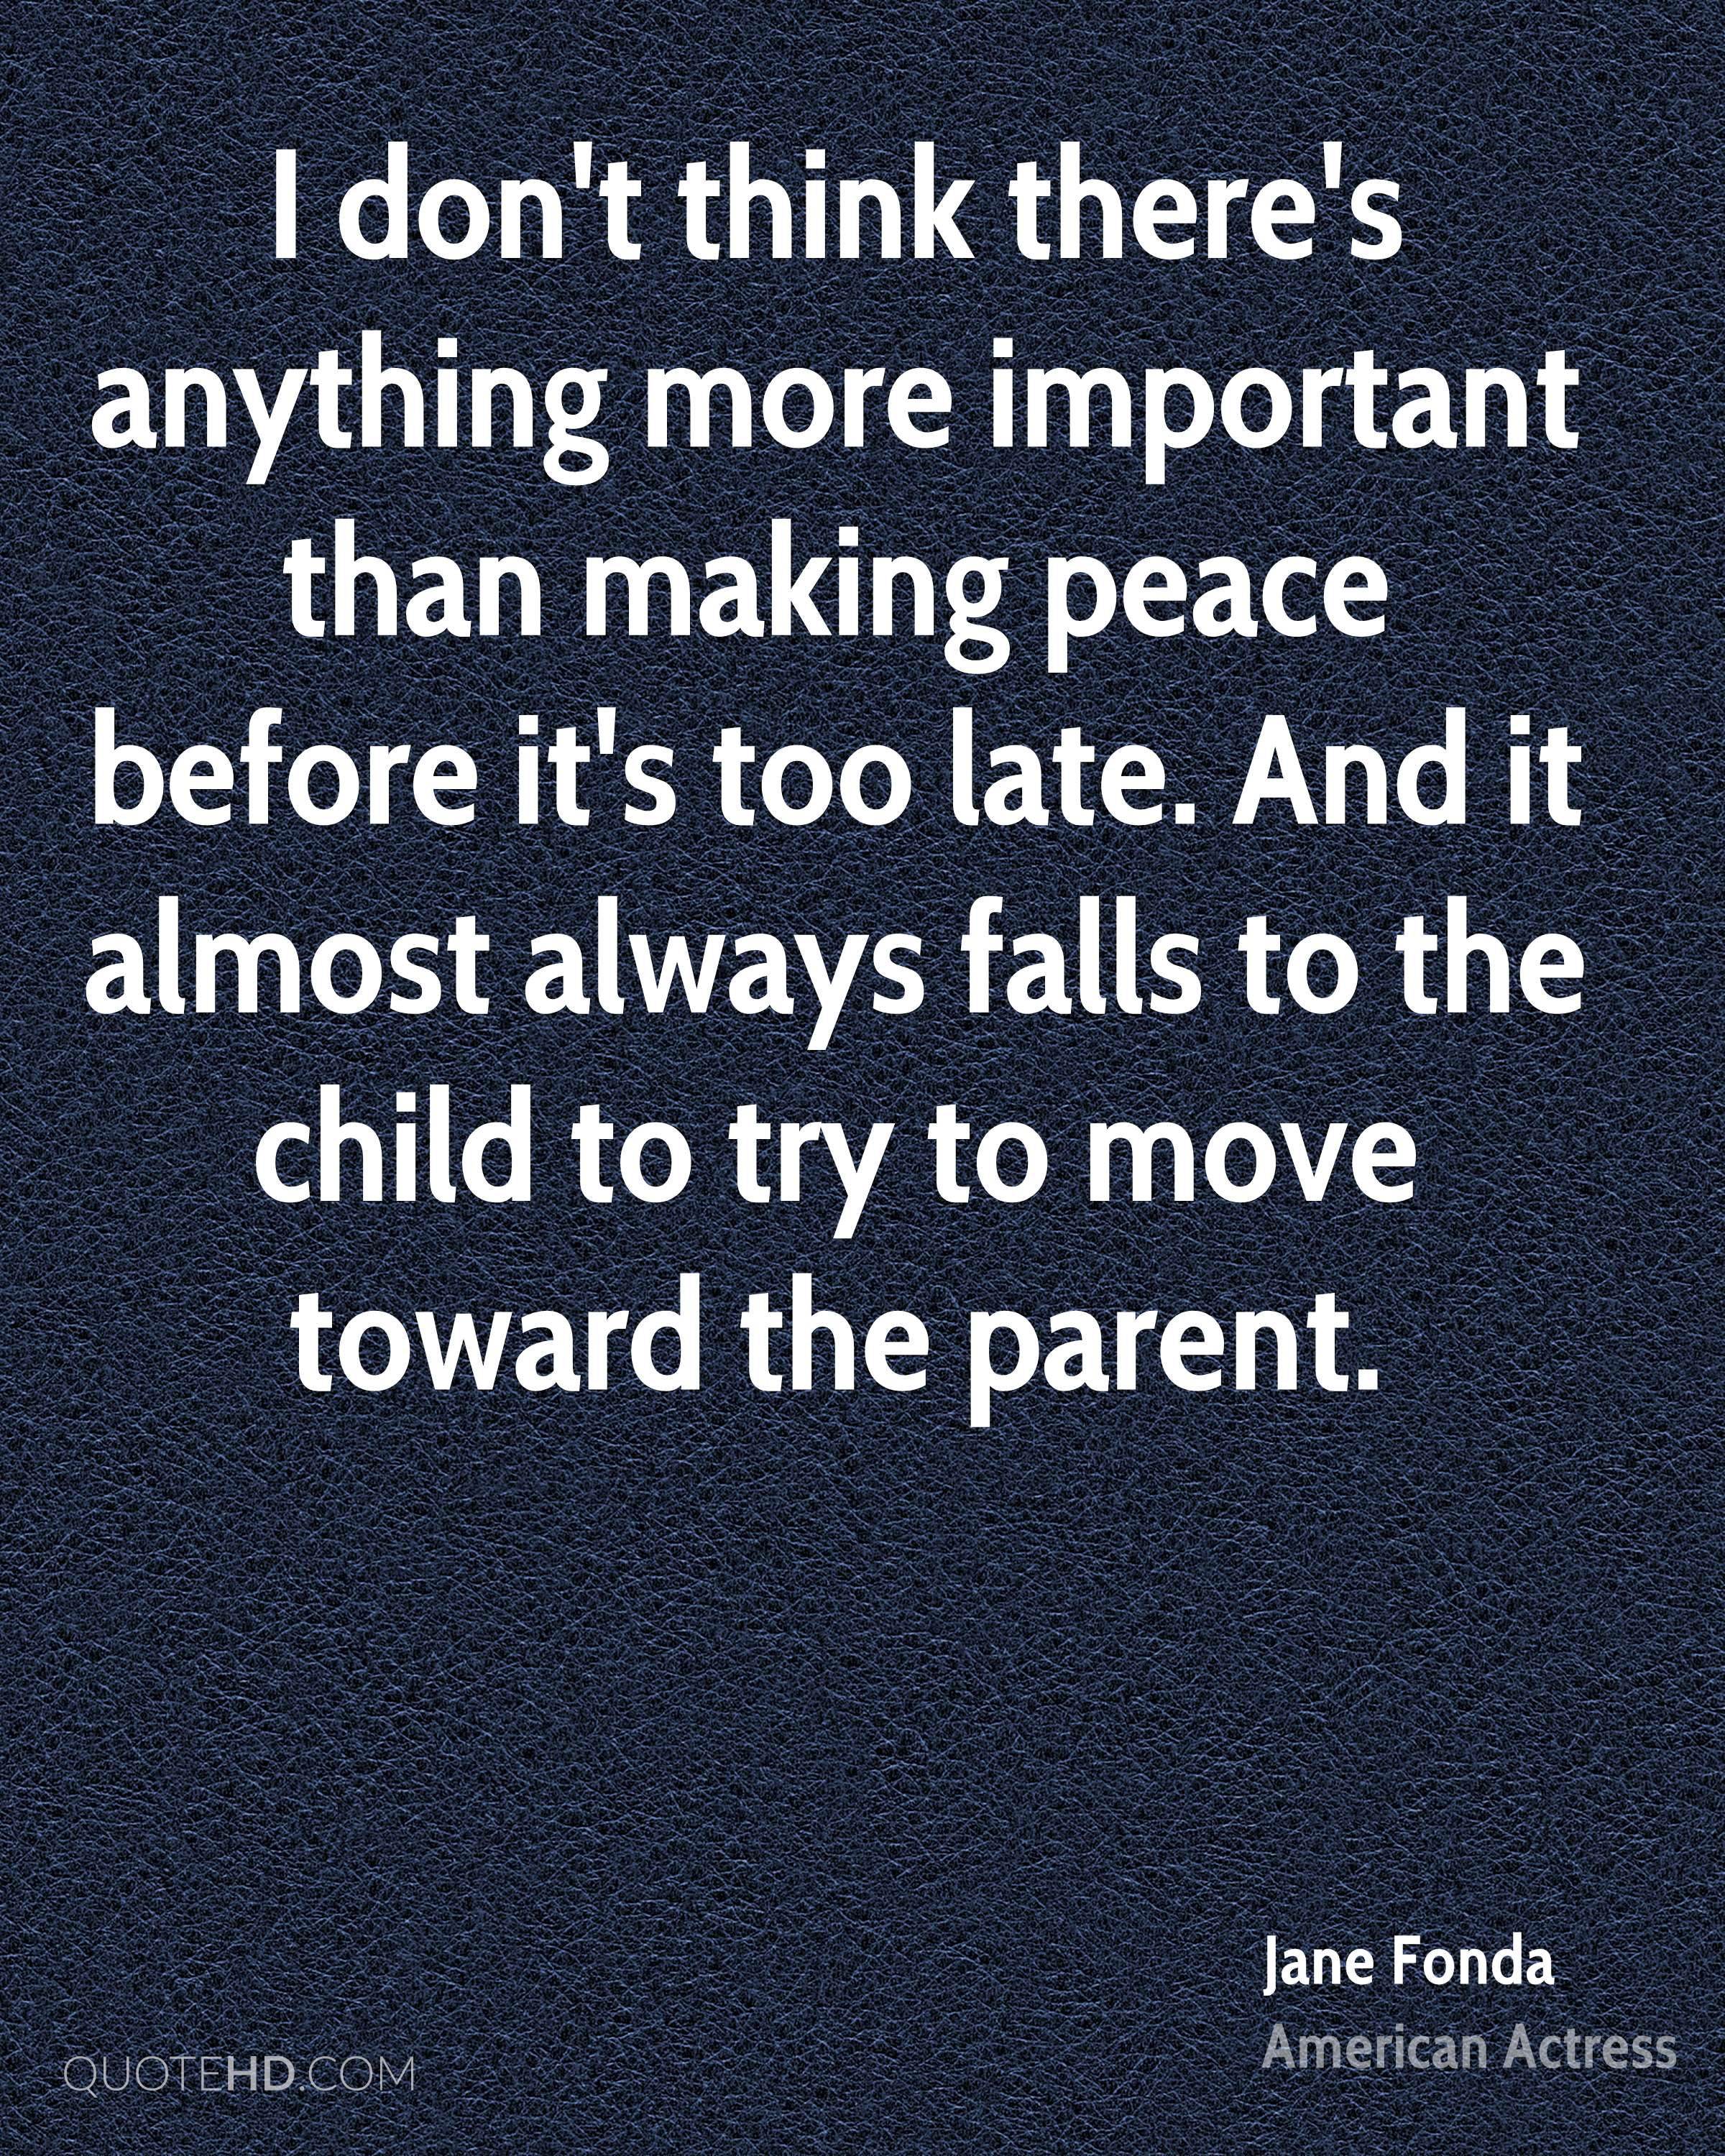 I don't think there's anything more important than making peace before it's too late. And it almost always falls to the child to try to move toward the parent.